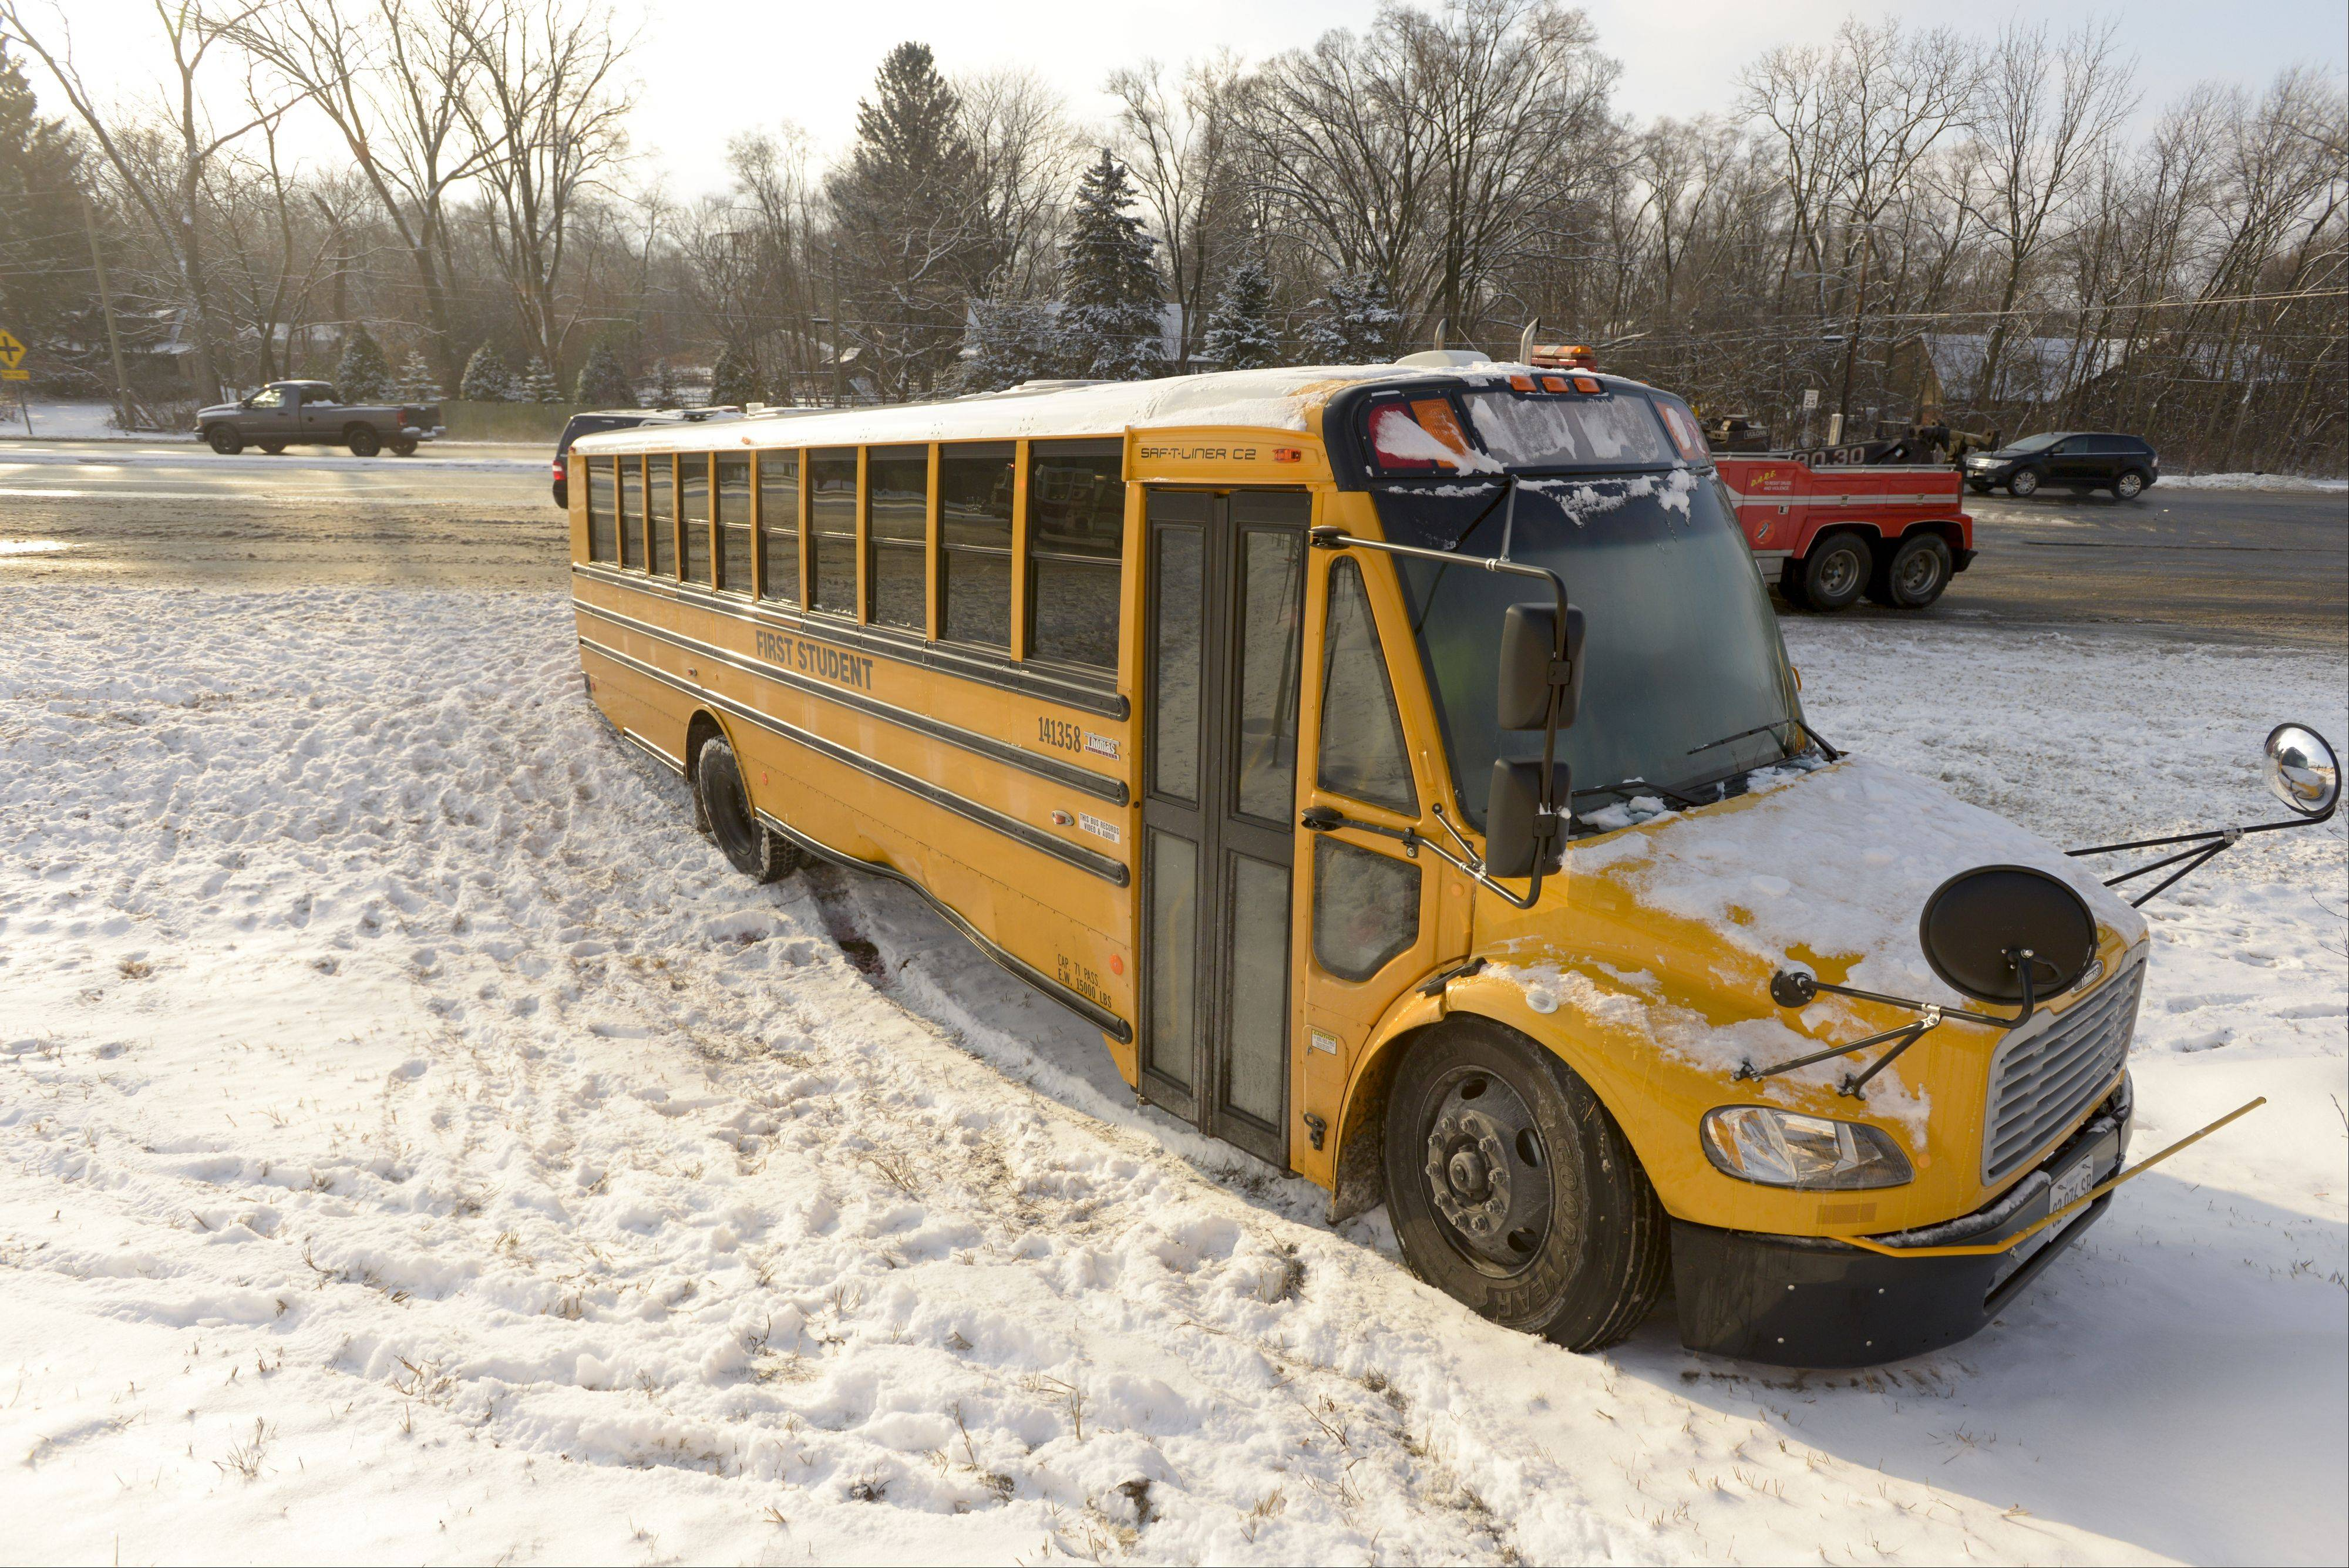 A school bus transporting students from Metea Valley and Waubonsie Valley high schools in Aurora to an event at Elmhurst College was struck by a Ford Explorer and sent spinning into a ditch Monday in Warrenville. No students were injured.